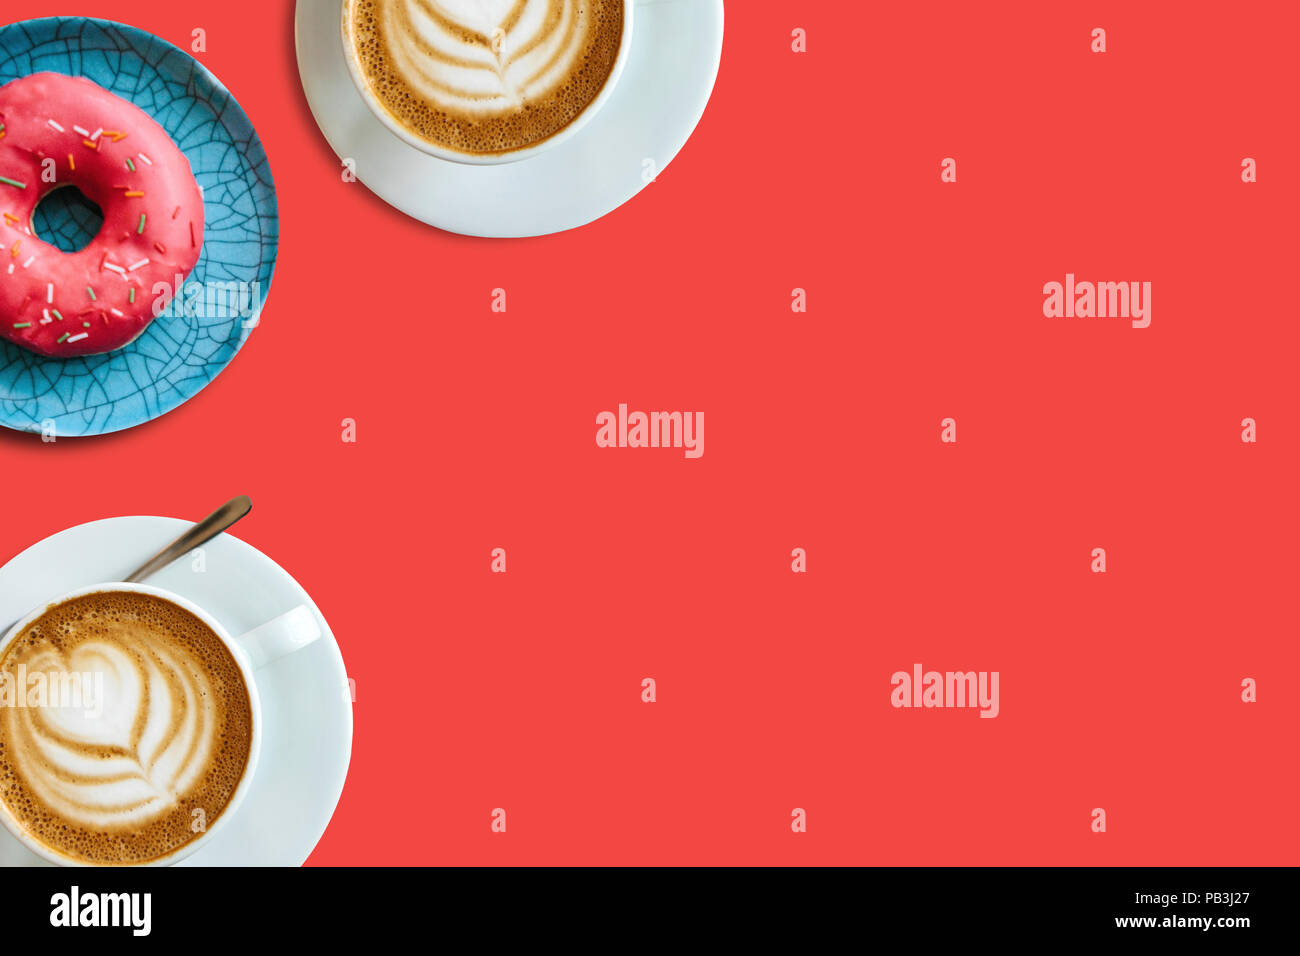 Top view. Two cups of fragrant delicious coffee cappuccino and a number of donut on a red background. Nearby place for text. - Stock Image